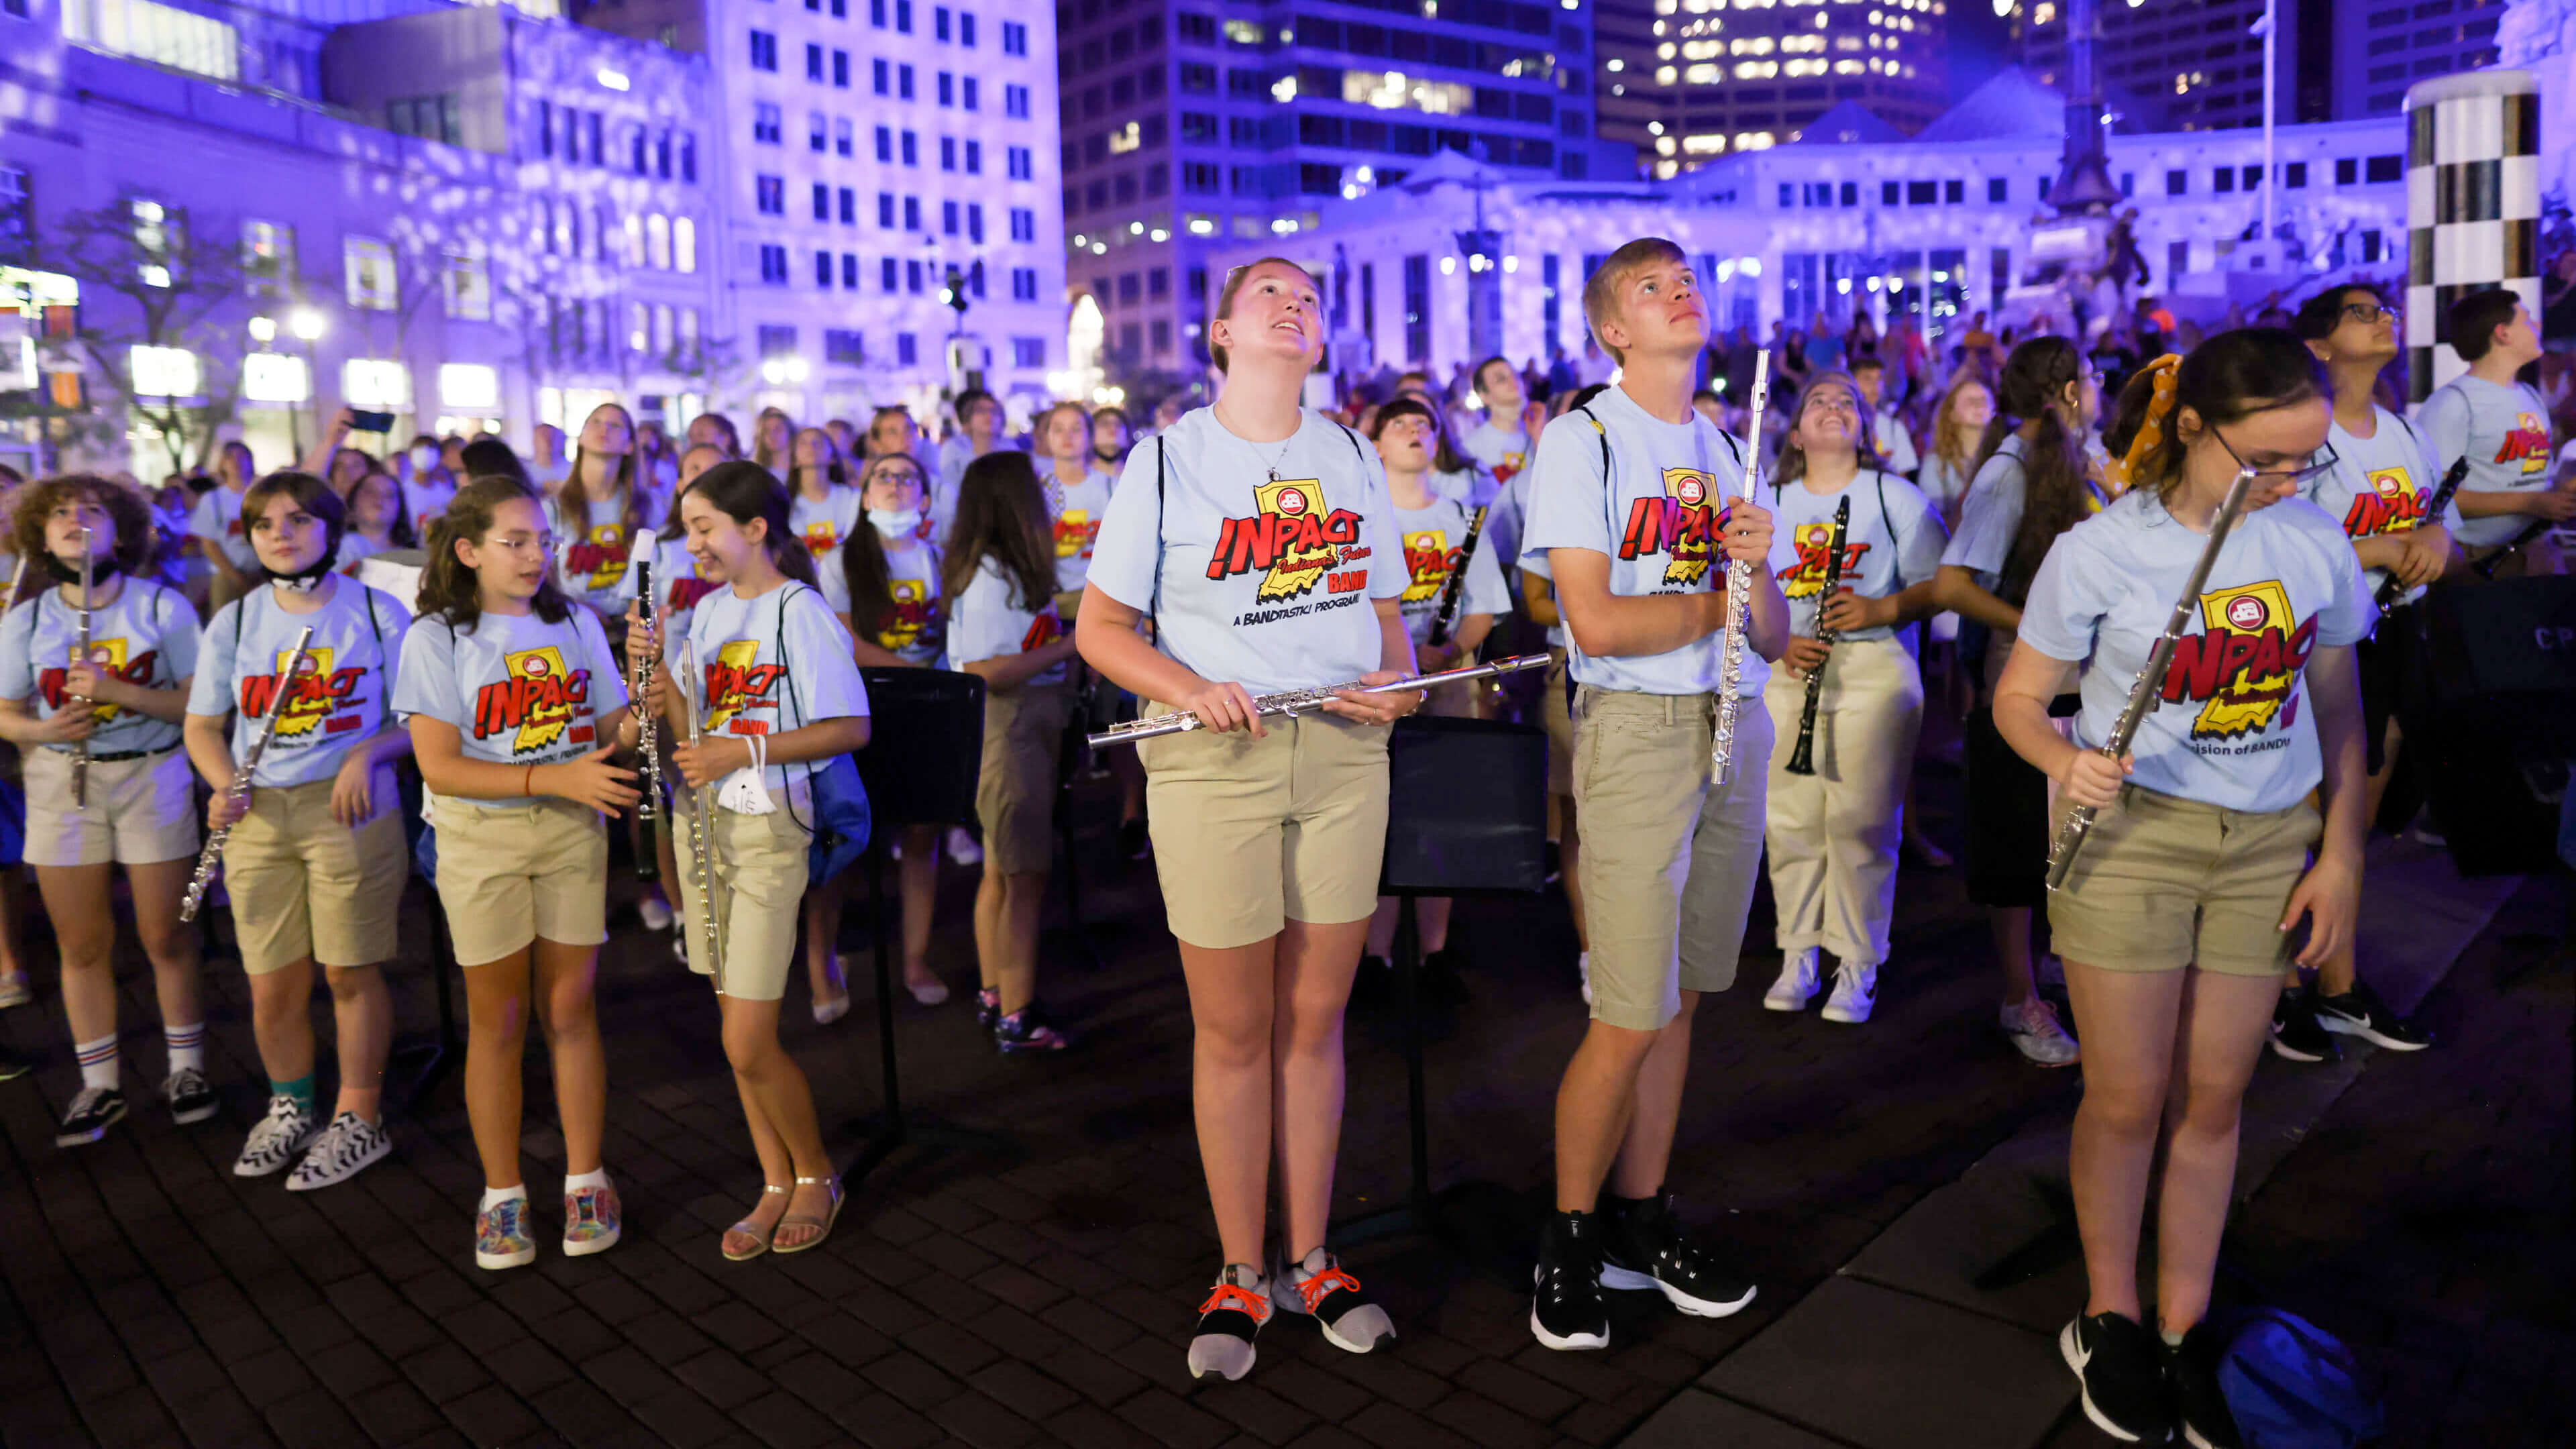 Lighting up Indy in support of music education